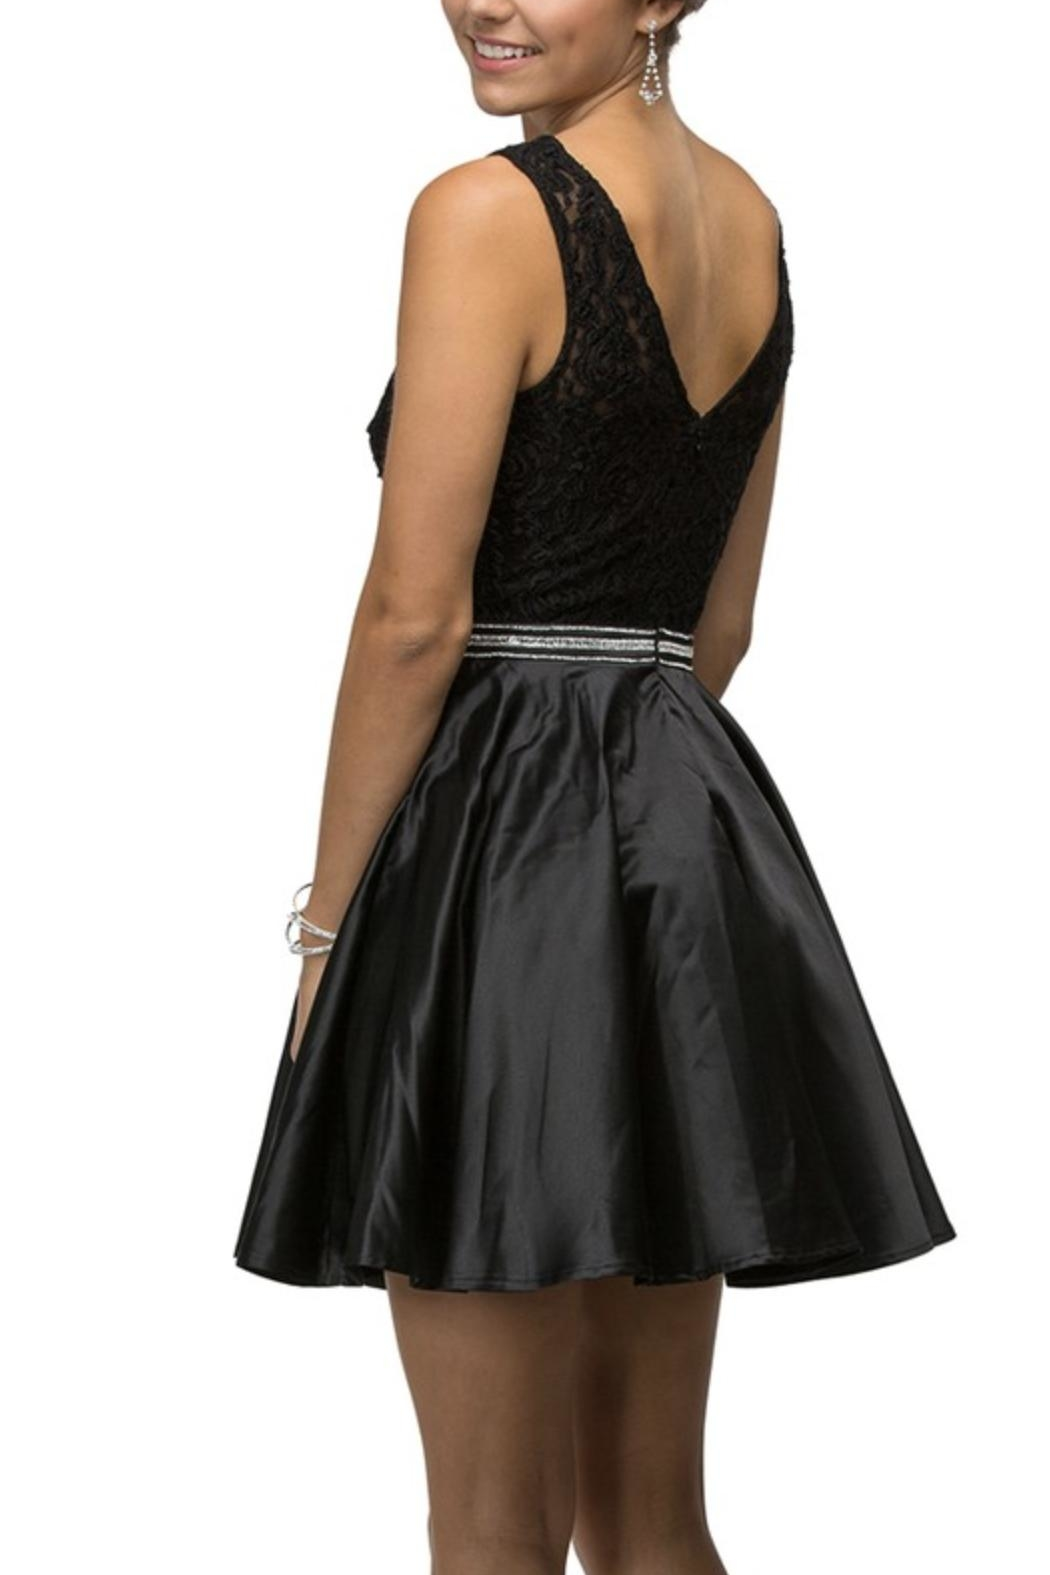 DANCING QUEEN Fit-And-Flare Prom Dress - Main Image